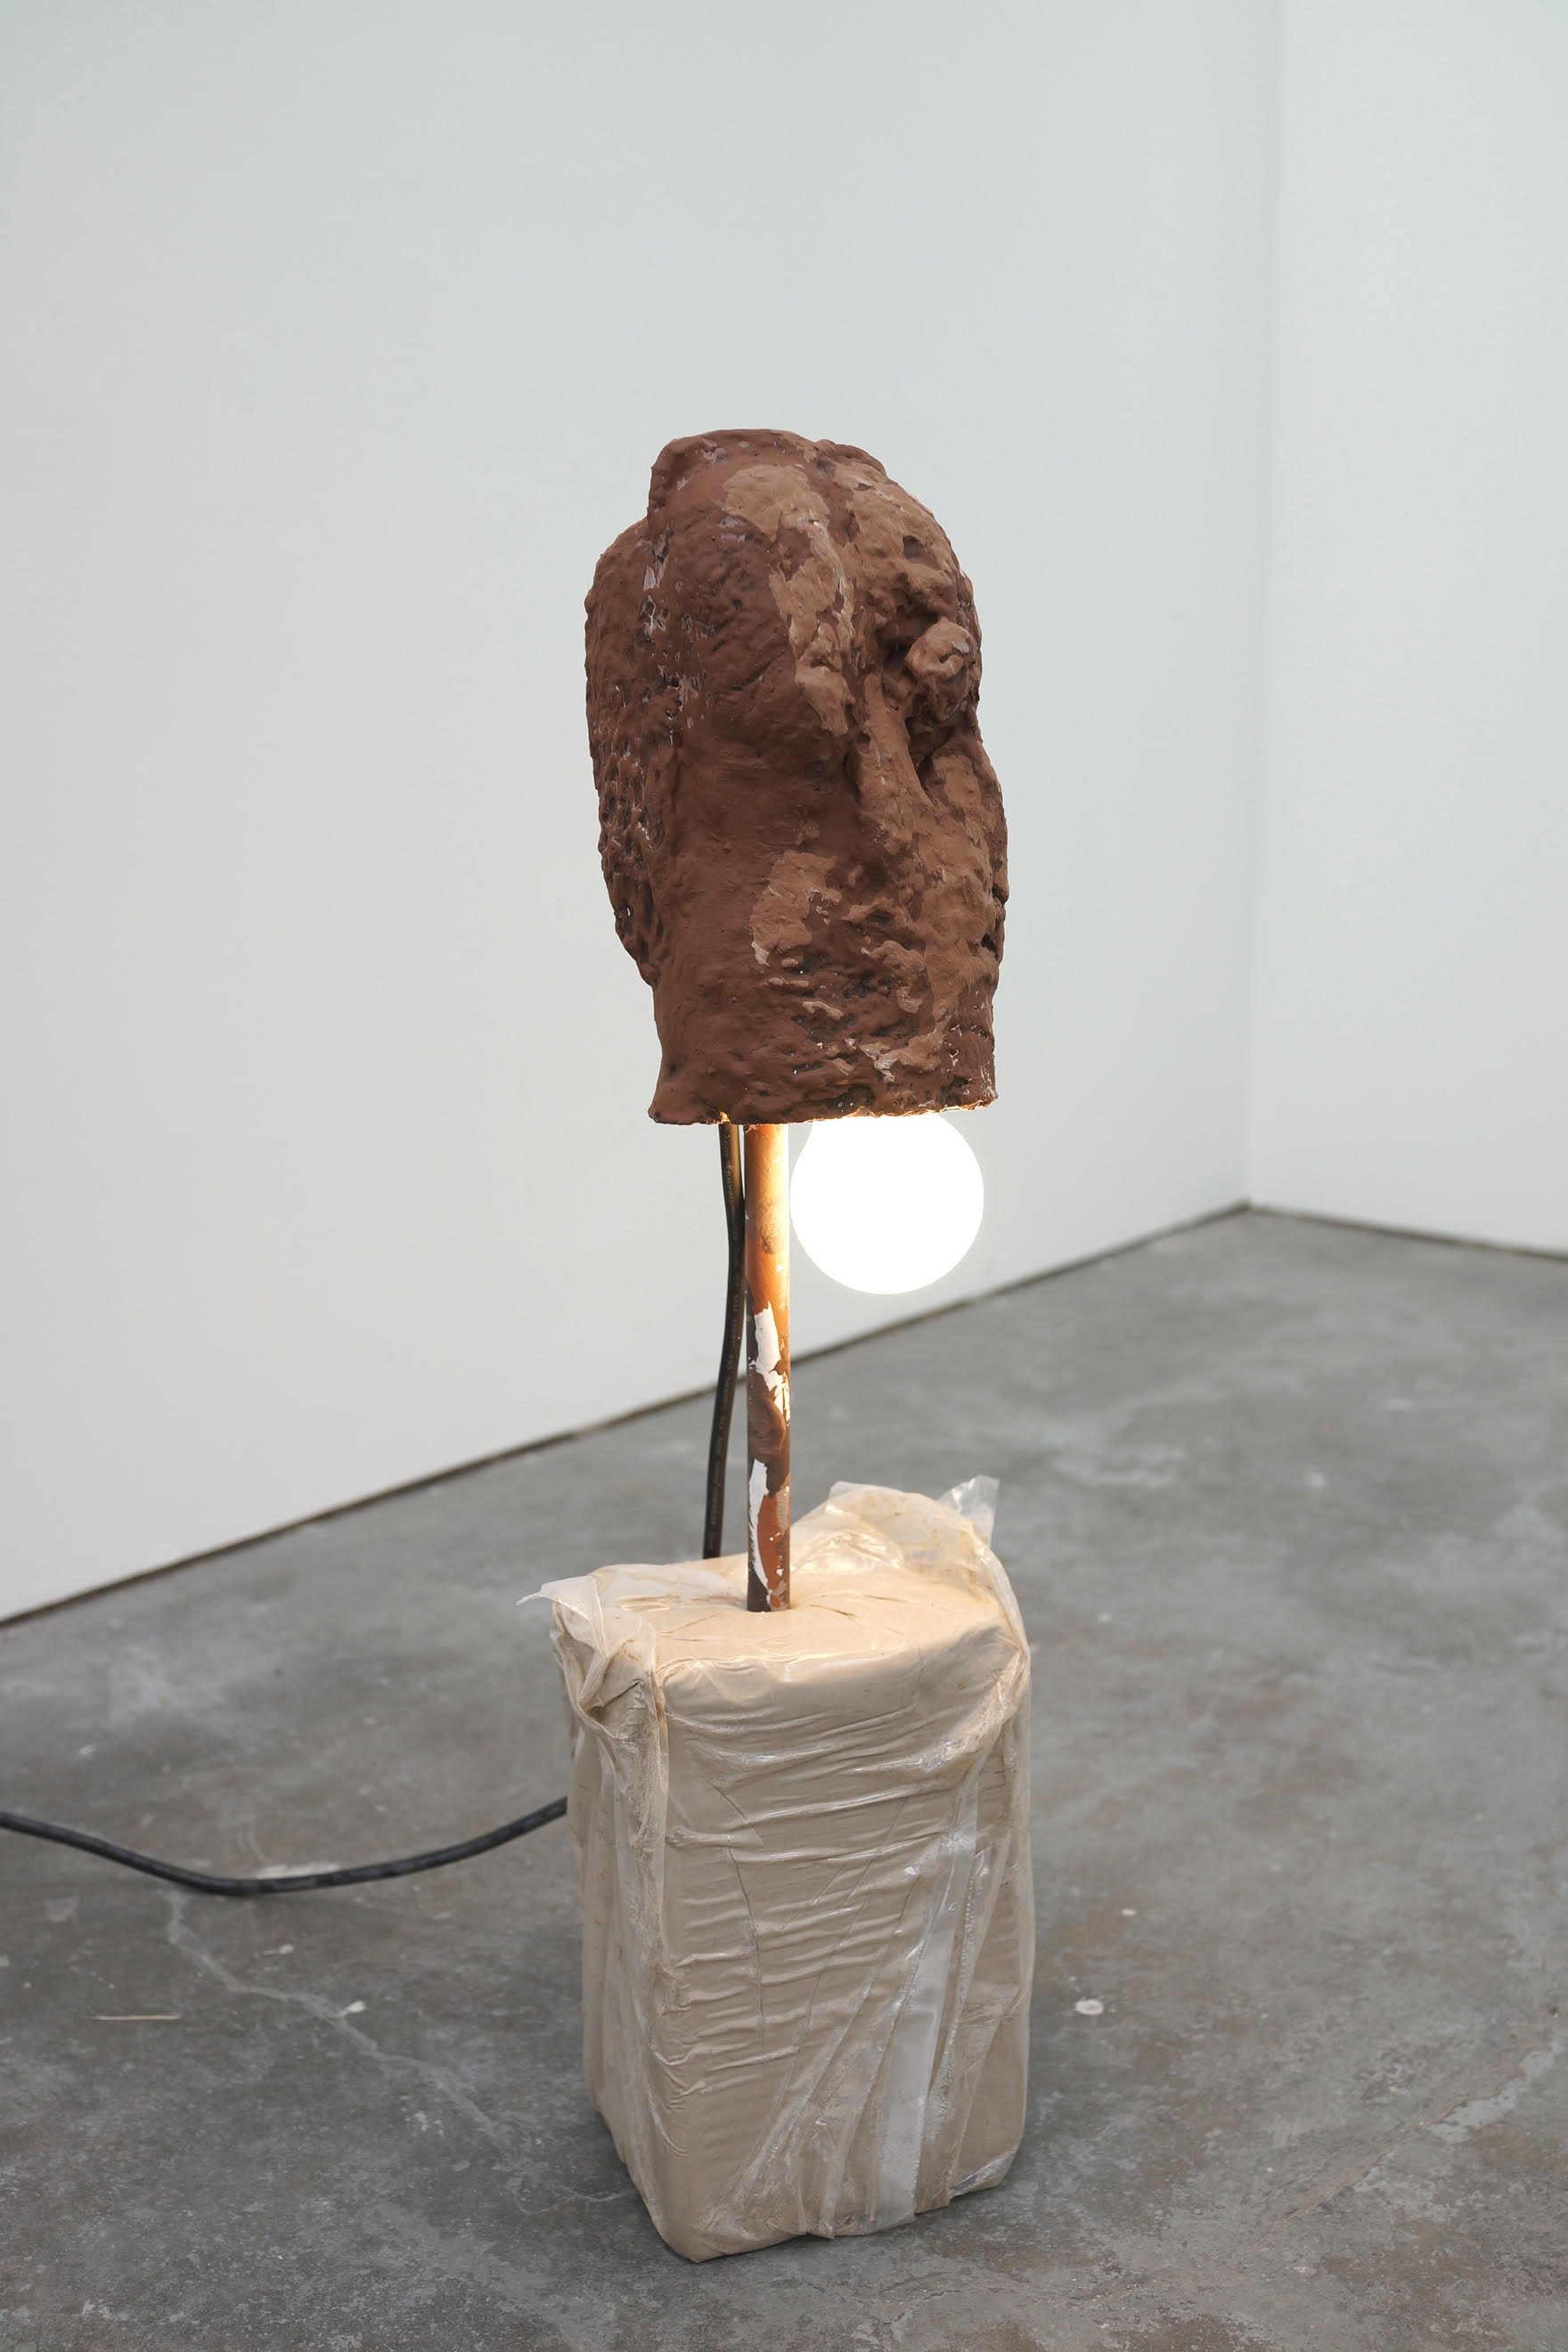 """Brion Nuda Rosch, """"Earth Head Light Bulb Wet Earth"""", acrylic, pigment, fired ceramic, metal, light bulb, bag of unfired wet clay, 2018"""